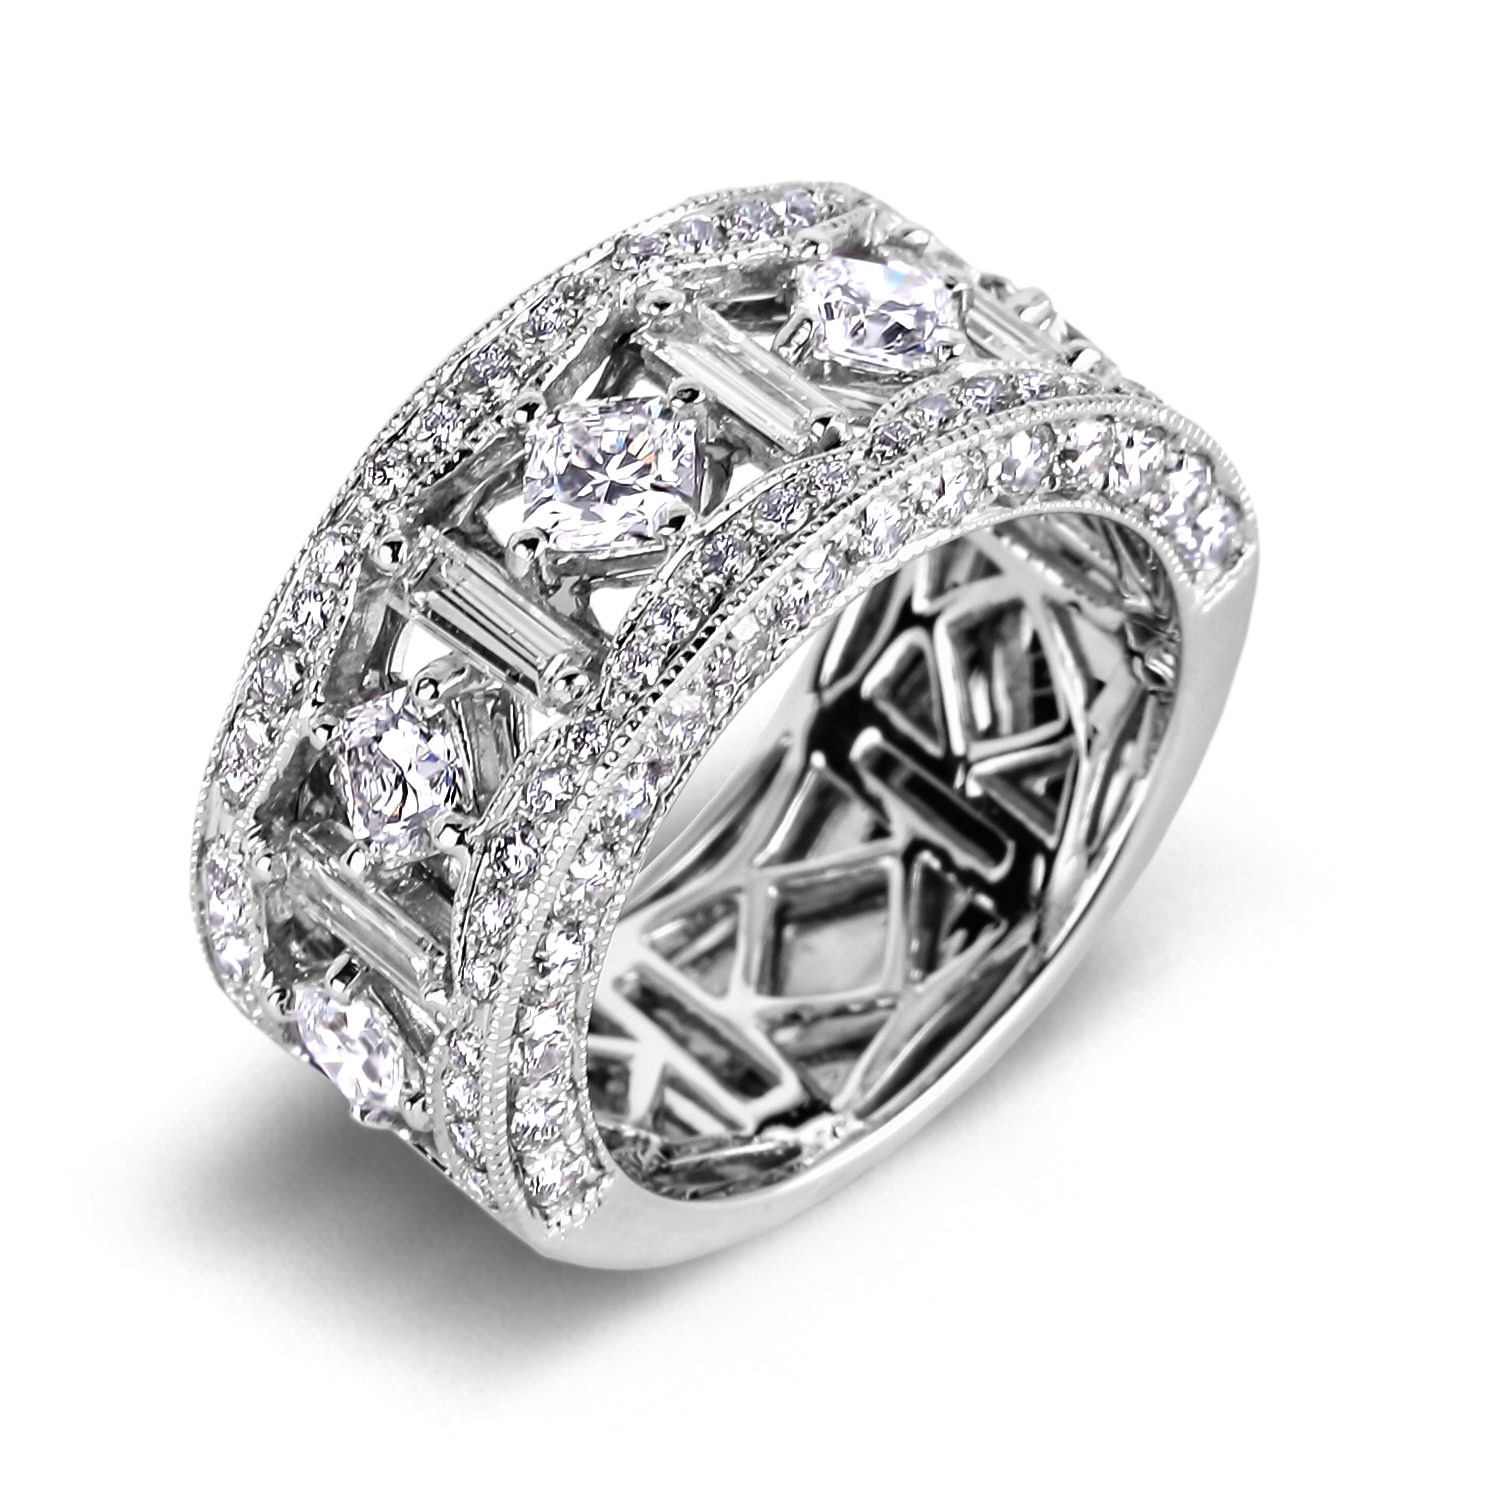 bridal product fl rings ring anniversaries categories jacksonville engagements and aniversary jewelry diamond engagement